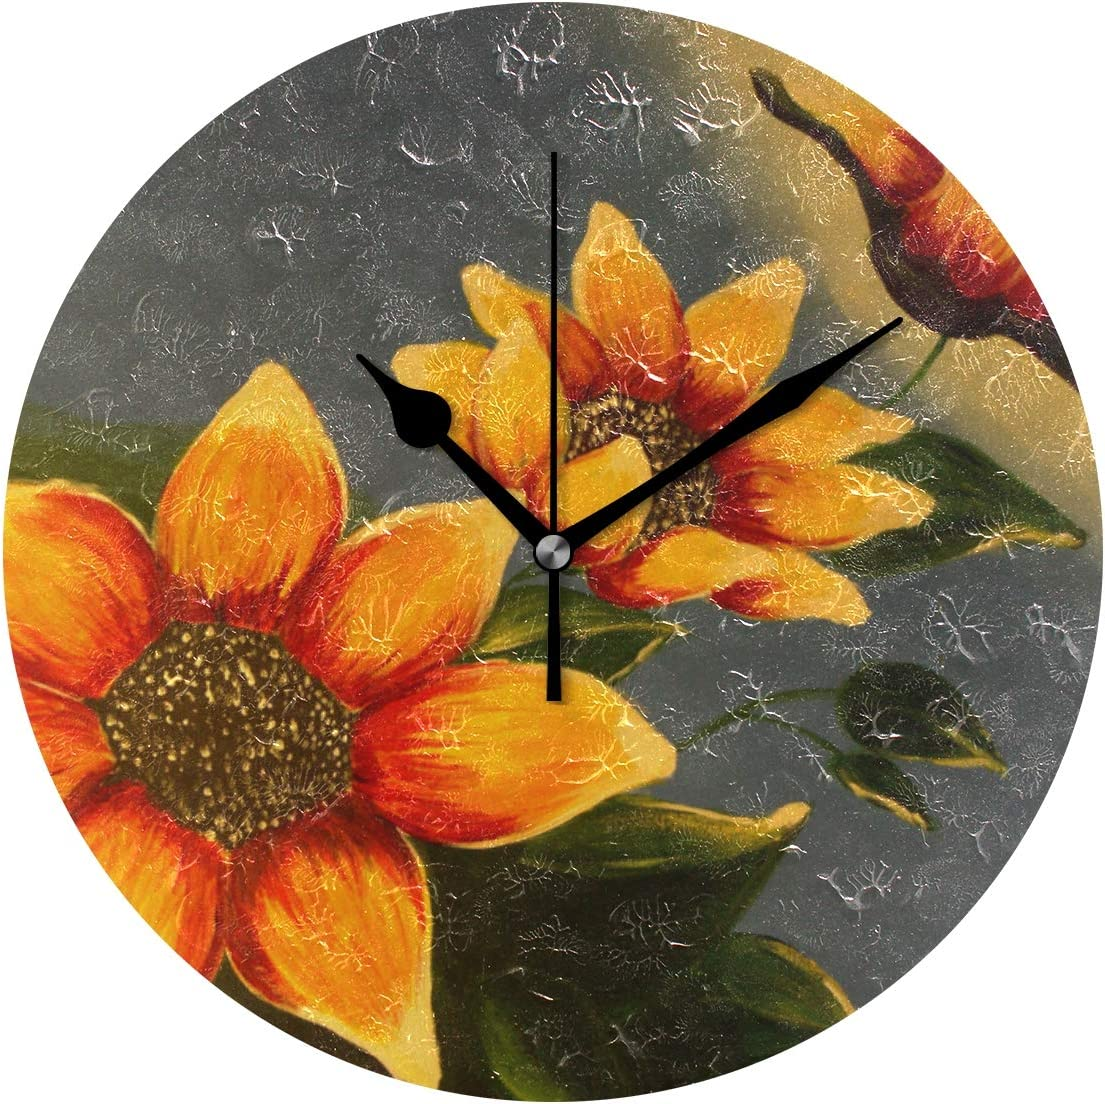 Amazon Com Fajro Simple Flowers Painting Wall Clock Silent Round Decorative Wall Clock Home Kitchen